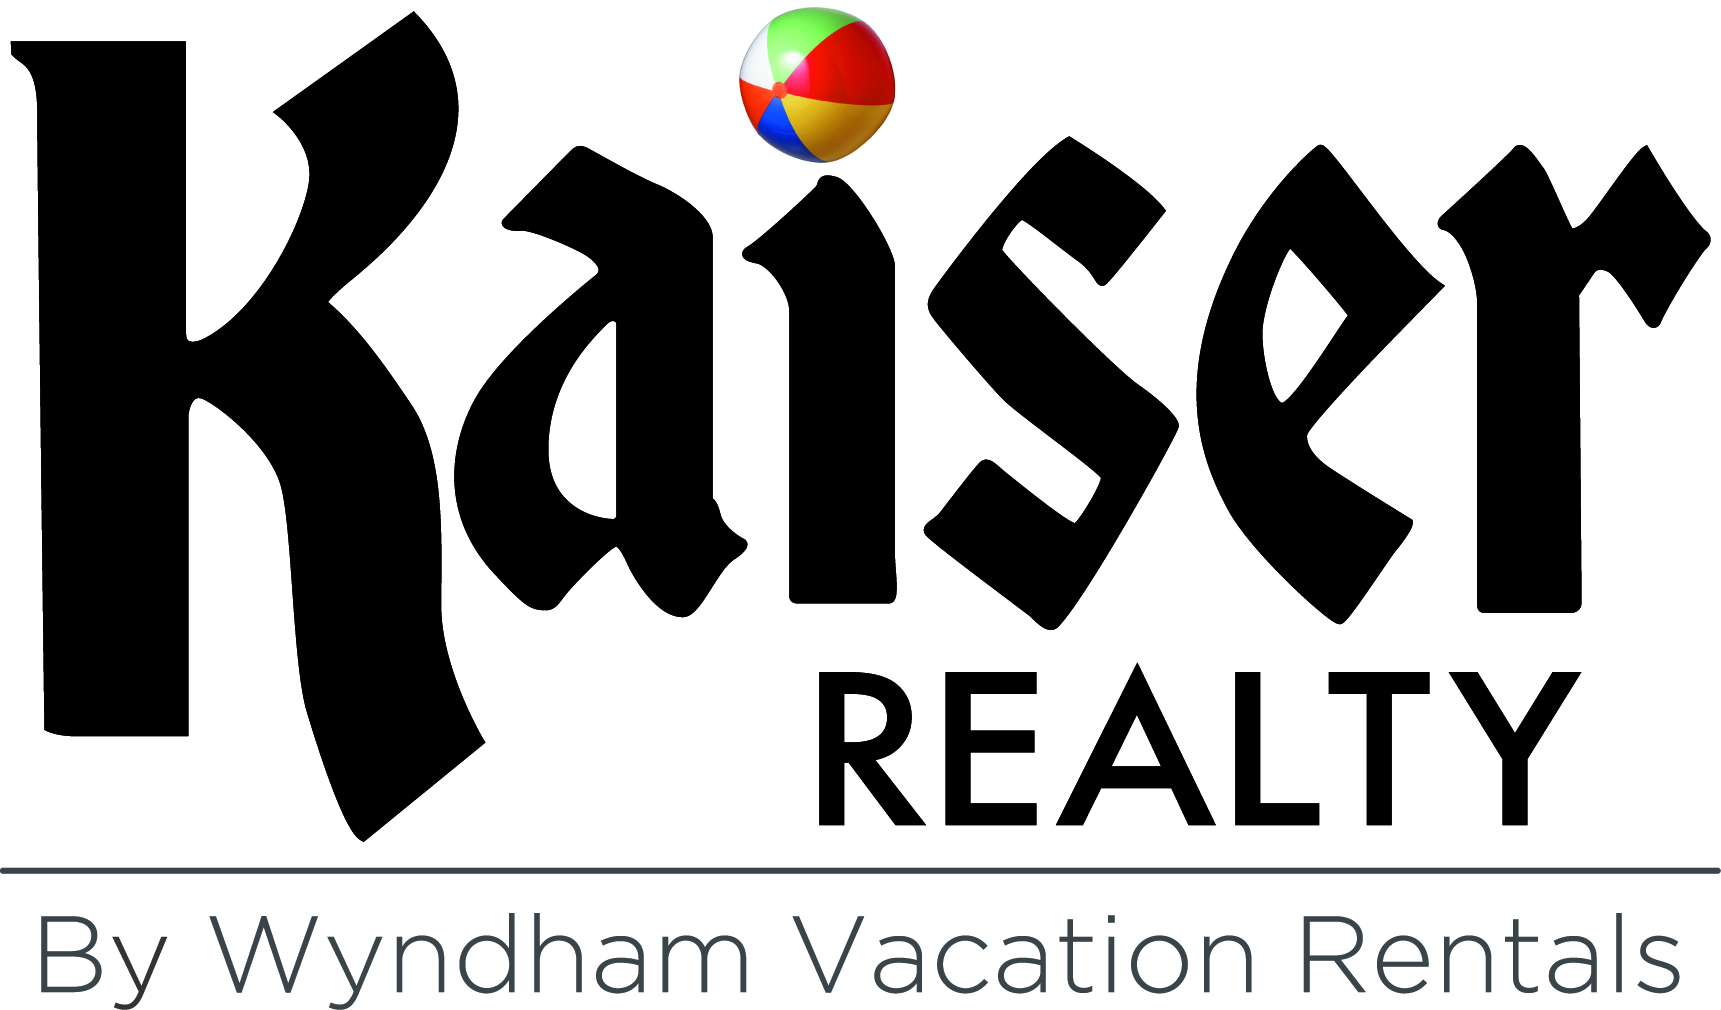 Kaiser-Realty-by-WVR-(no-Inc-).jpg